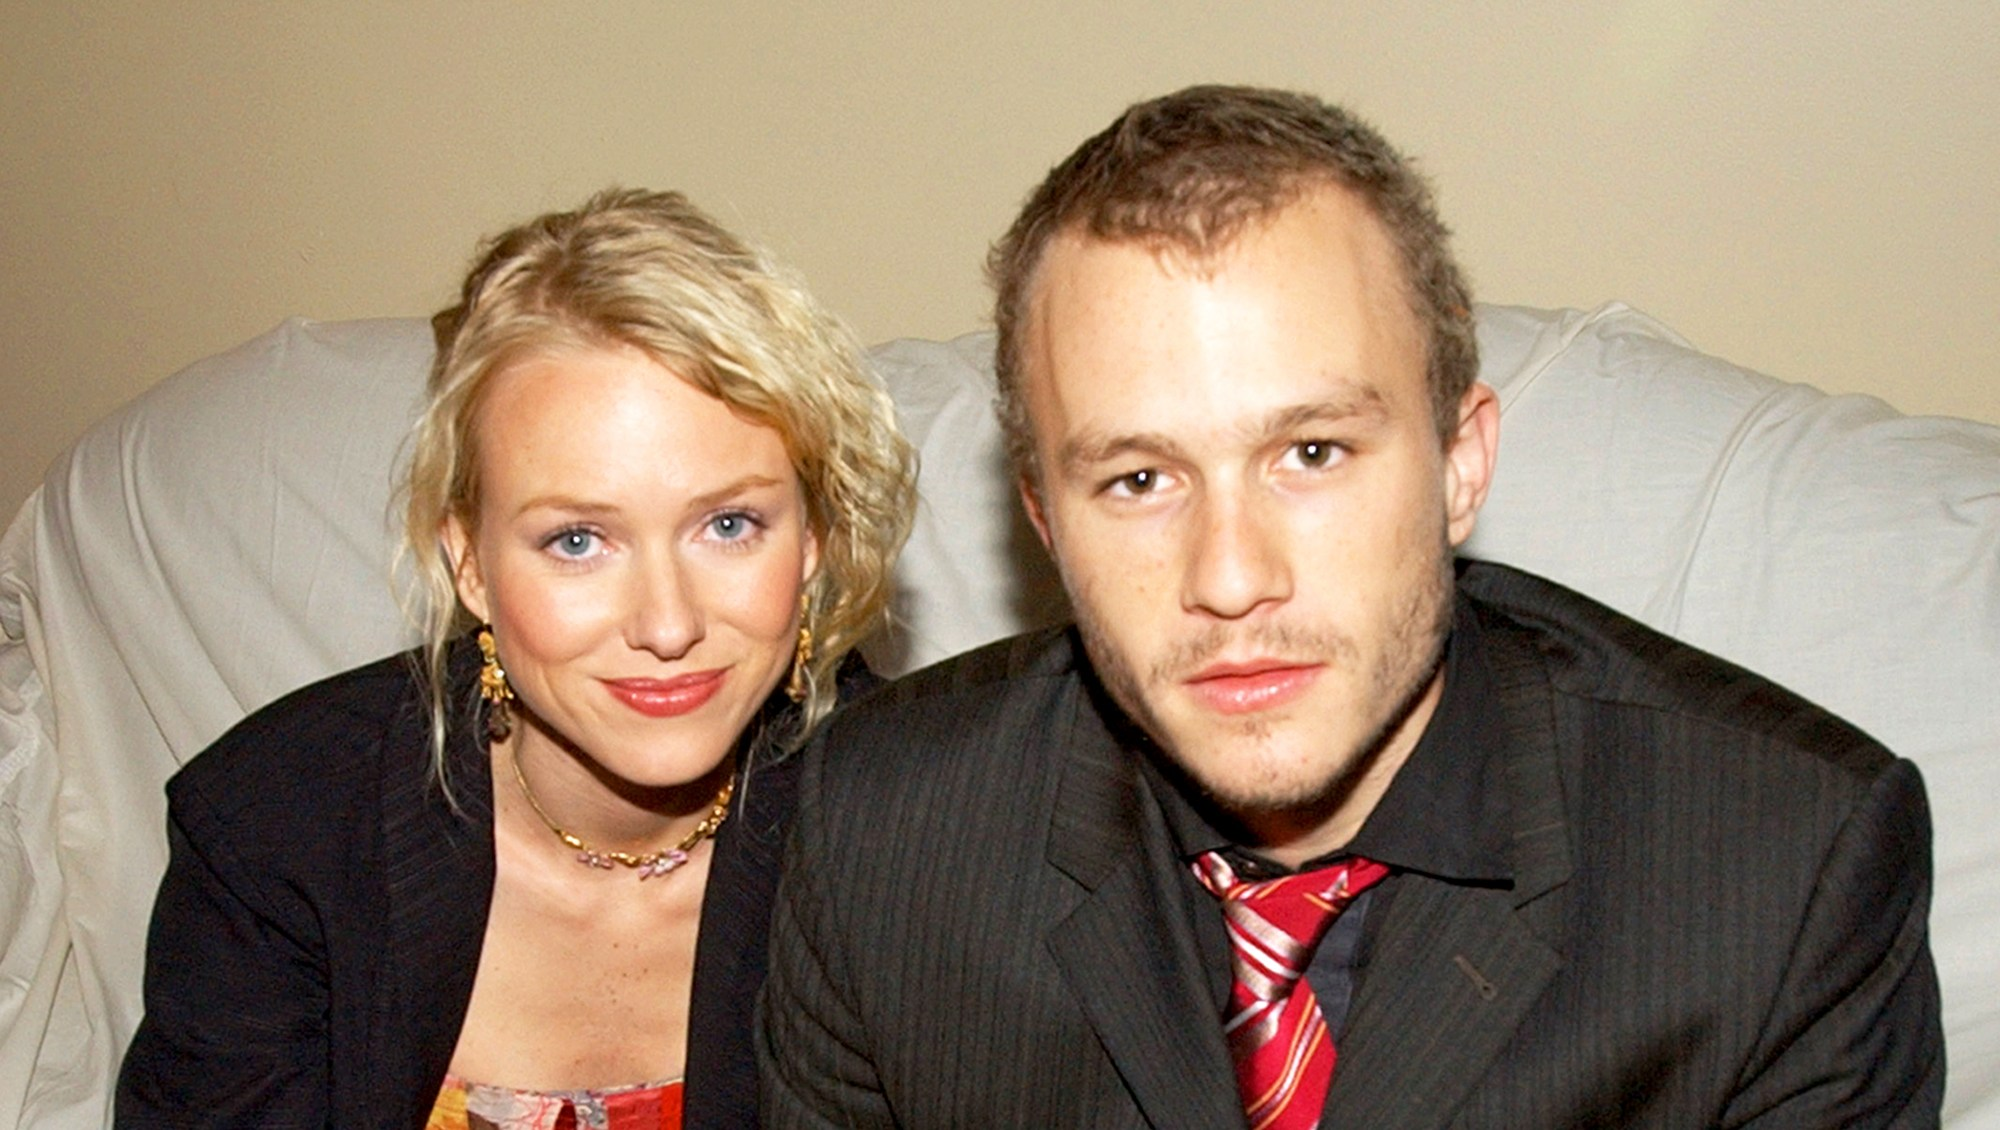 Naomi Watts and Heath Ledger attend the 2002 GQ Men of the Year Awards in New York City.